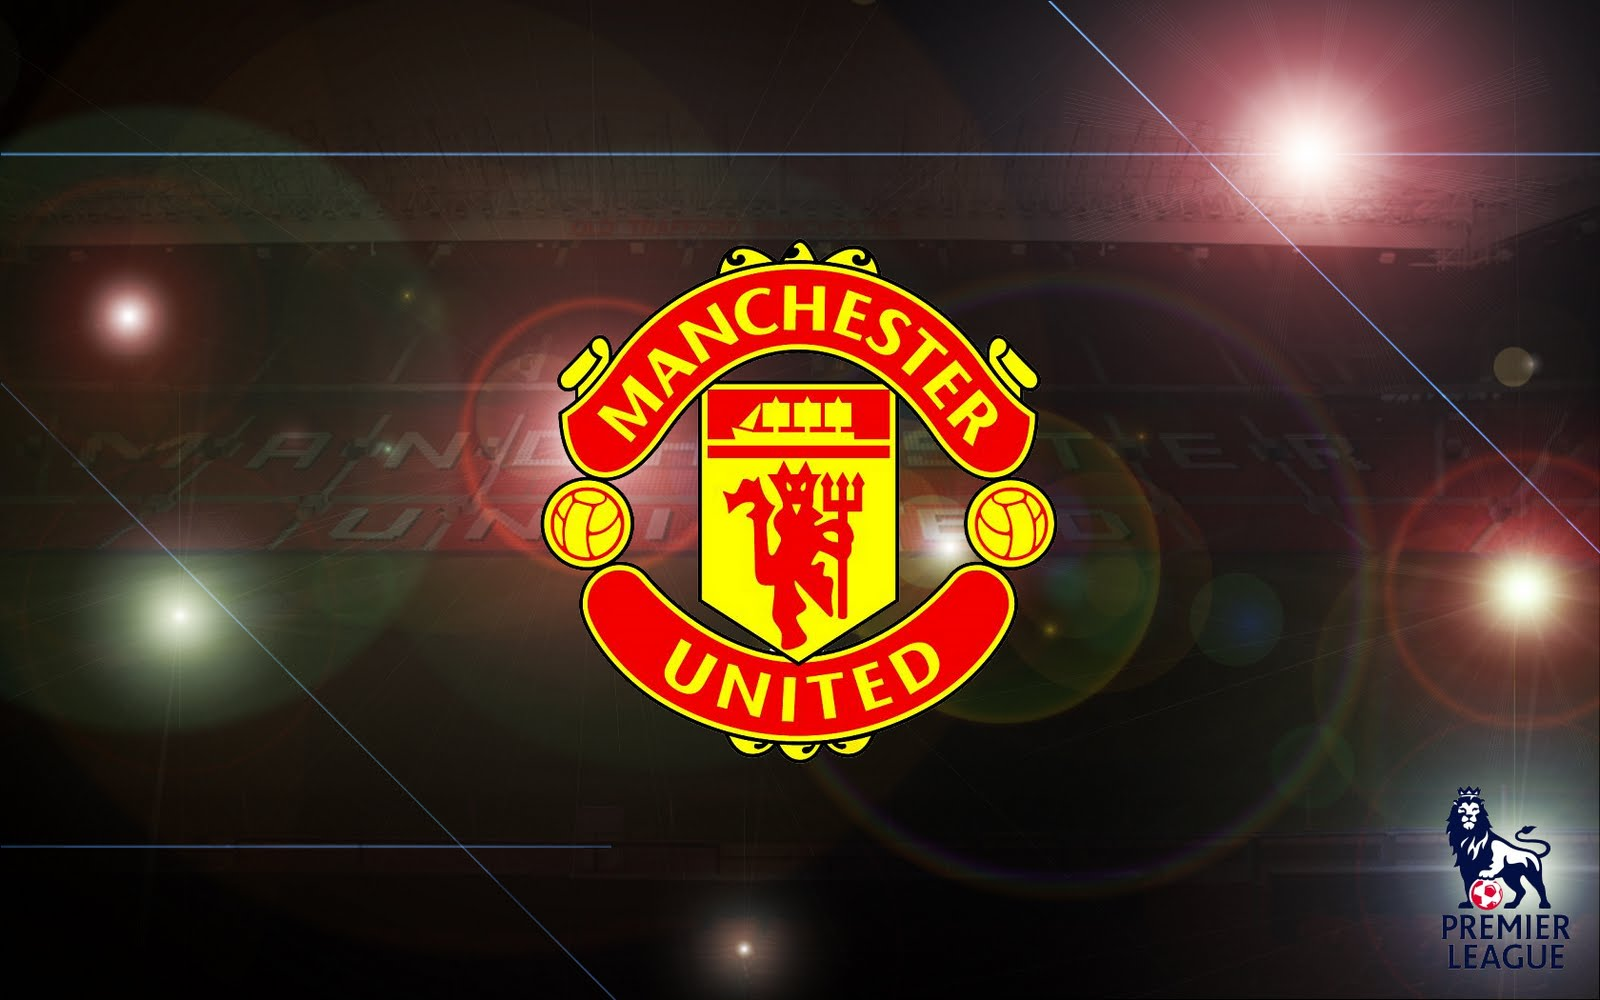 manchester united wallpapers 1 - photo #13